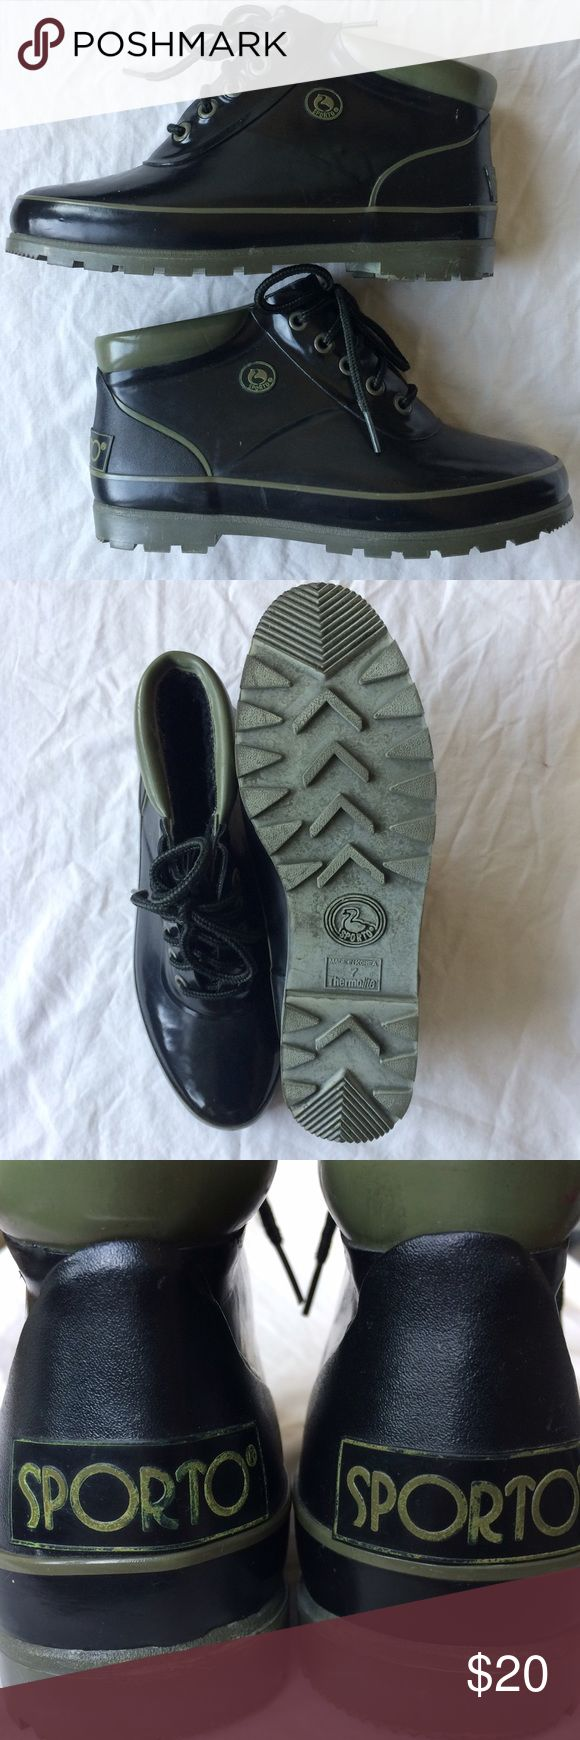 Vintage 90's Sporto duck booties, size 7 Vintage black rubber Sporto snow/rain boots. Excellent condition with so much life left! Vintage size 7.. runs a little bit small. Lined in fuzzy black sherpa for warmth. Sporto Shoes Winter & Rain Boots